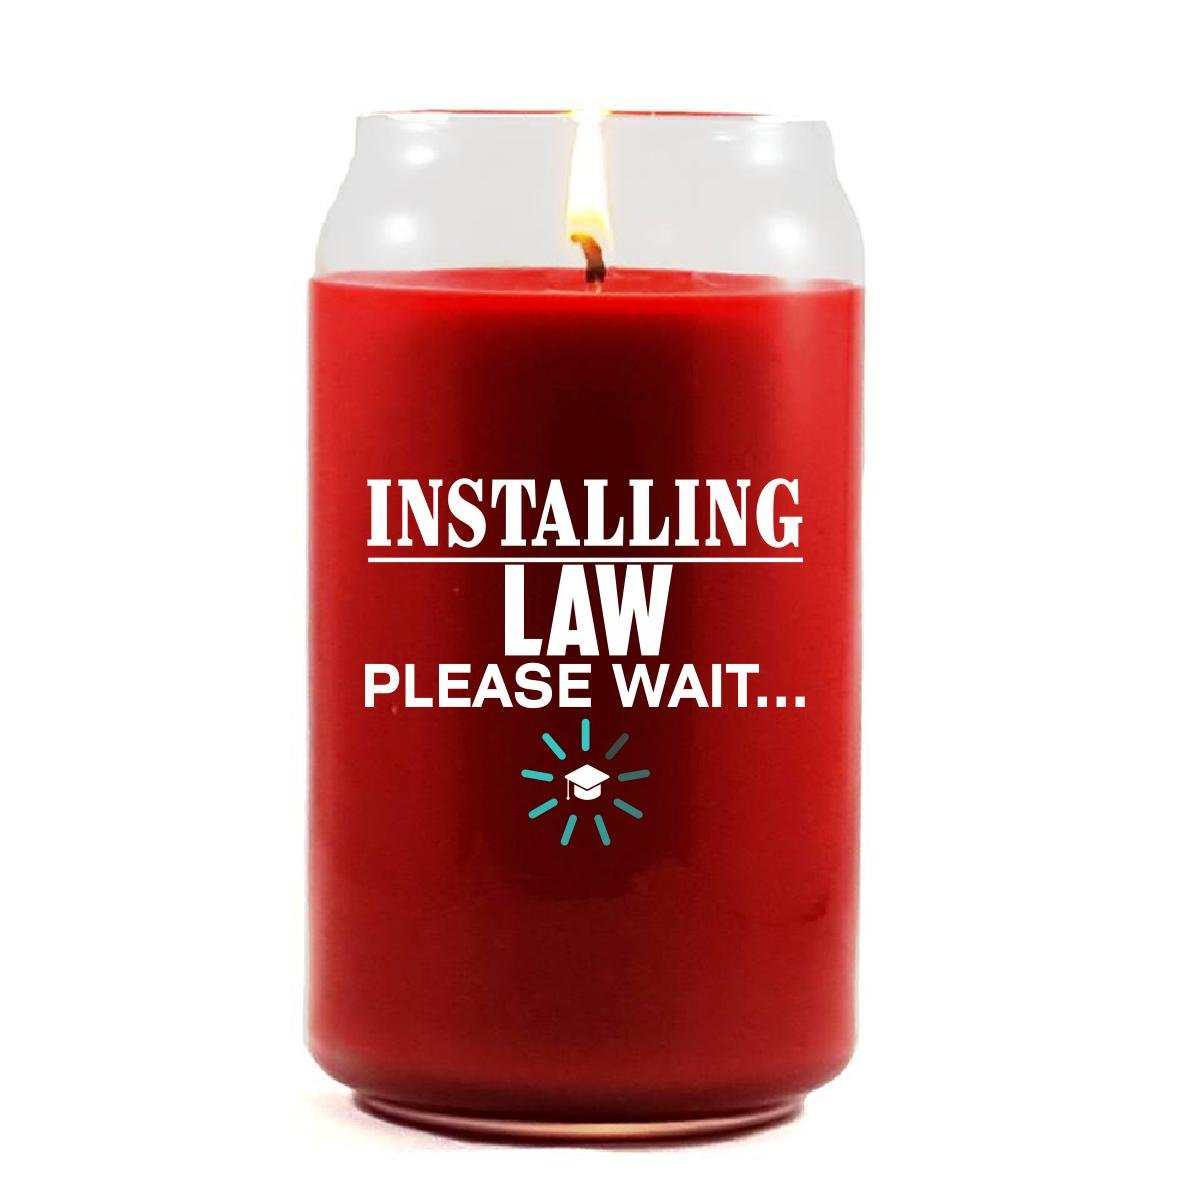 Installing LAW Please Wait College Degree - Scented Candle by Brands Banned (Image #1)